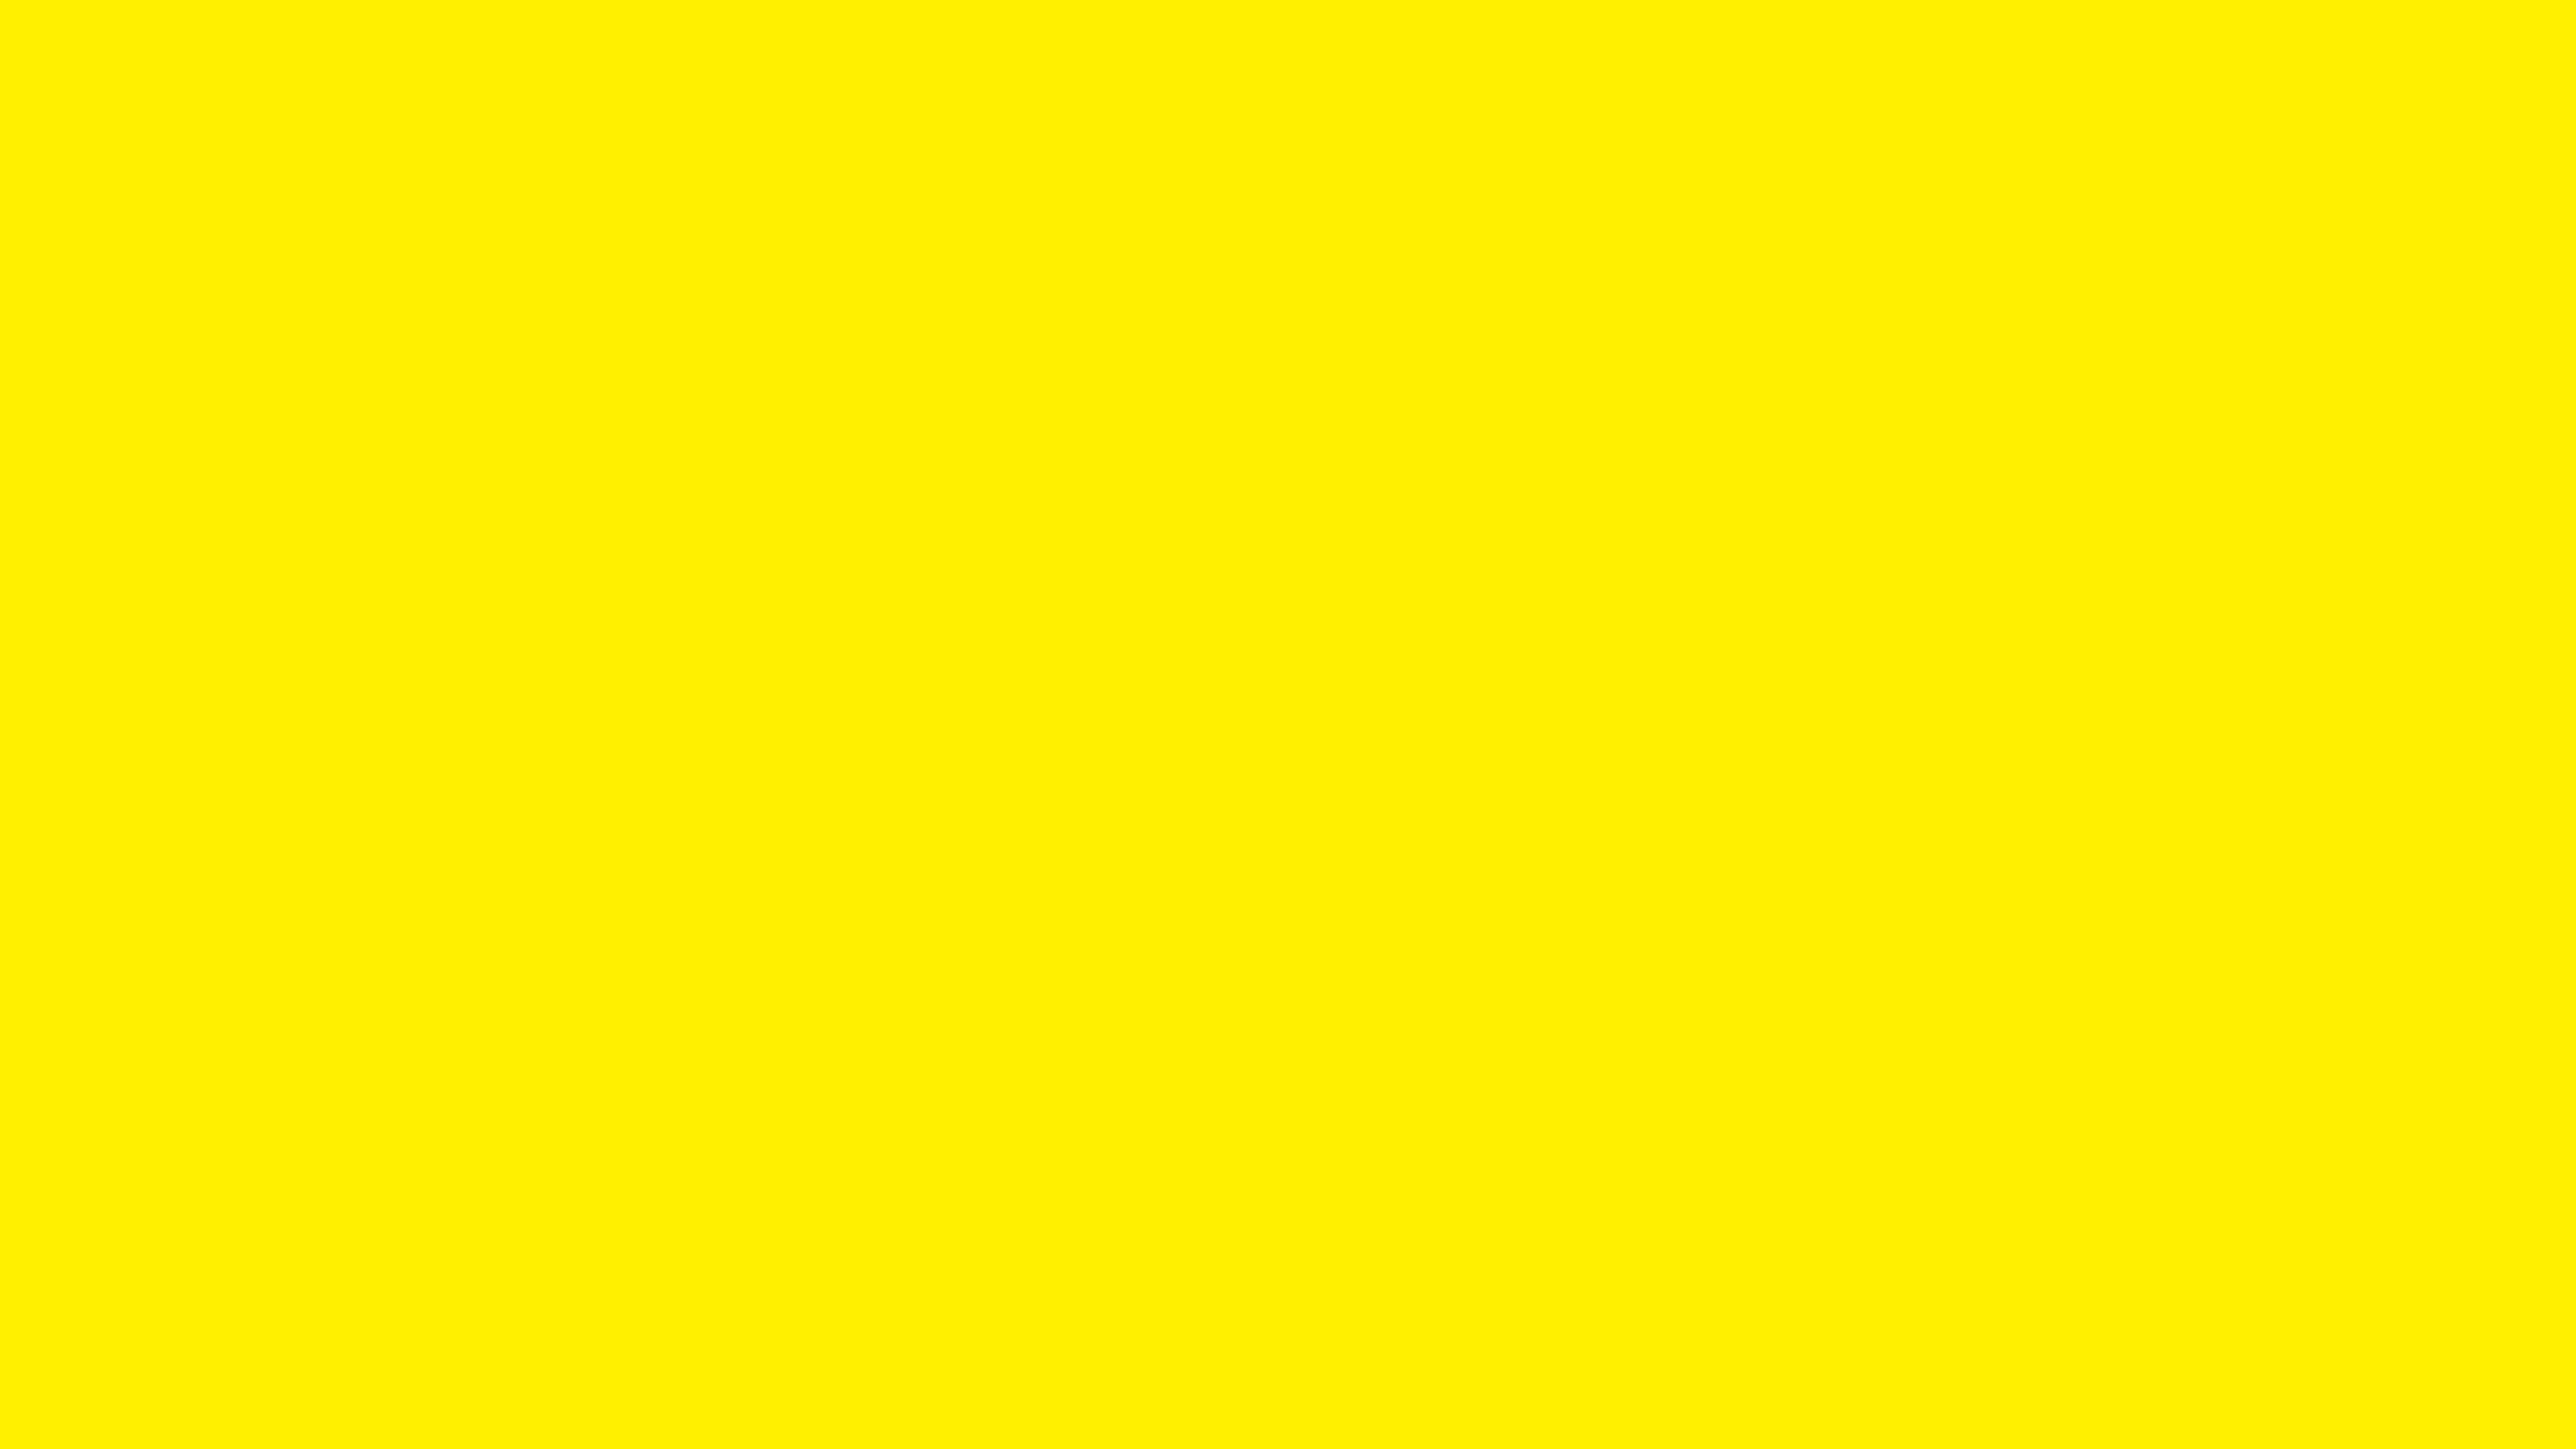 7680x4320 Yellow Rose Solid Color Background